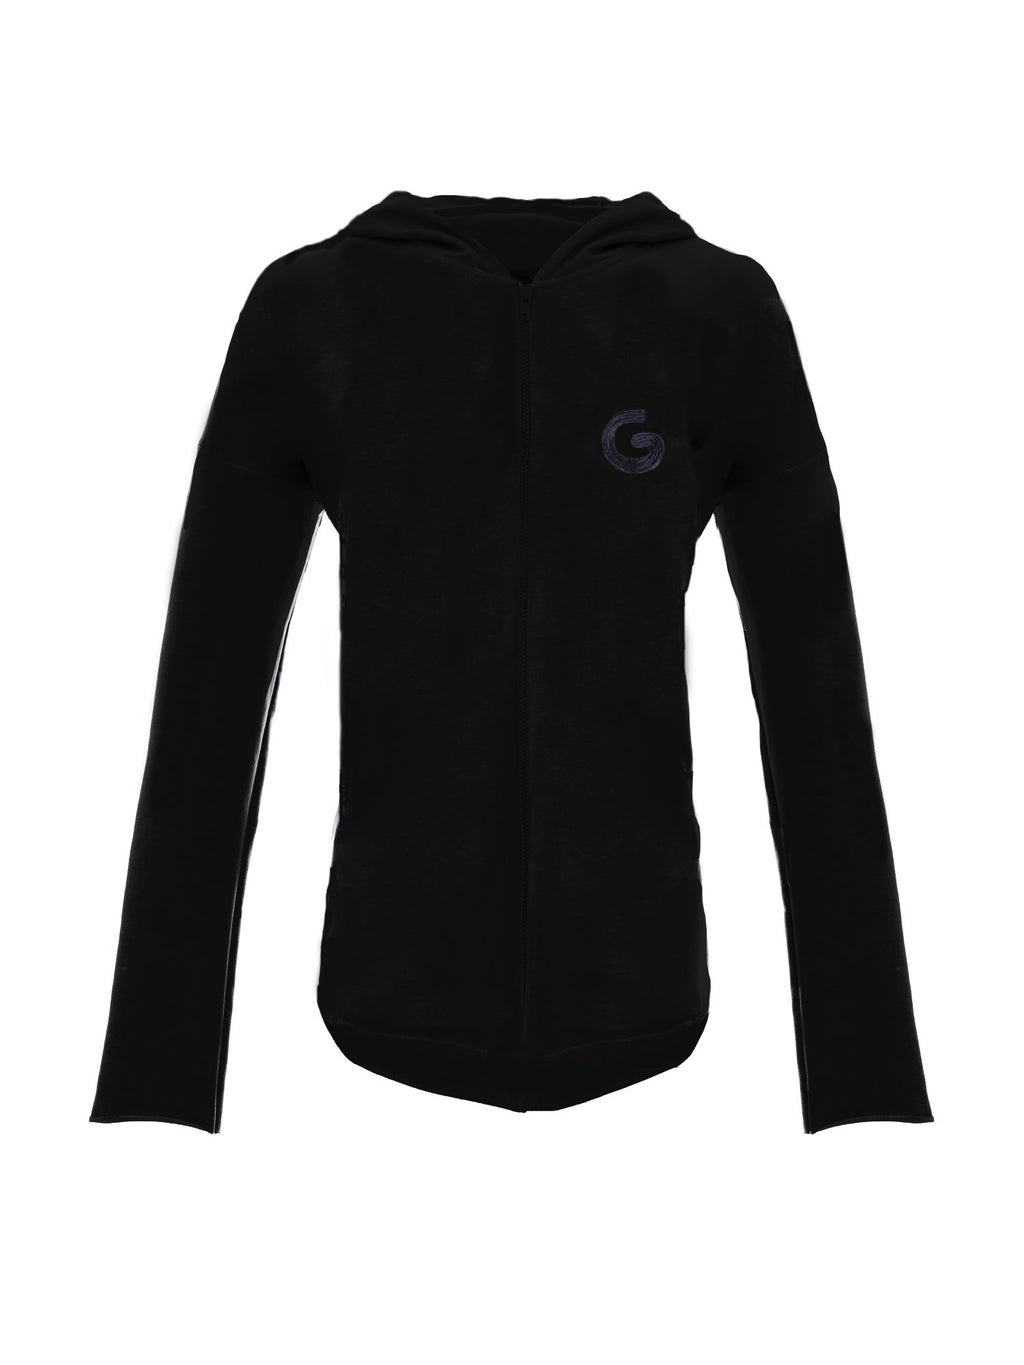 TheG Essential Riri Zip Hoody // black